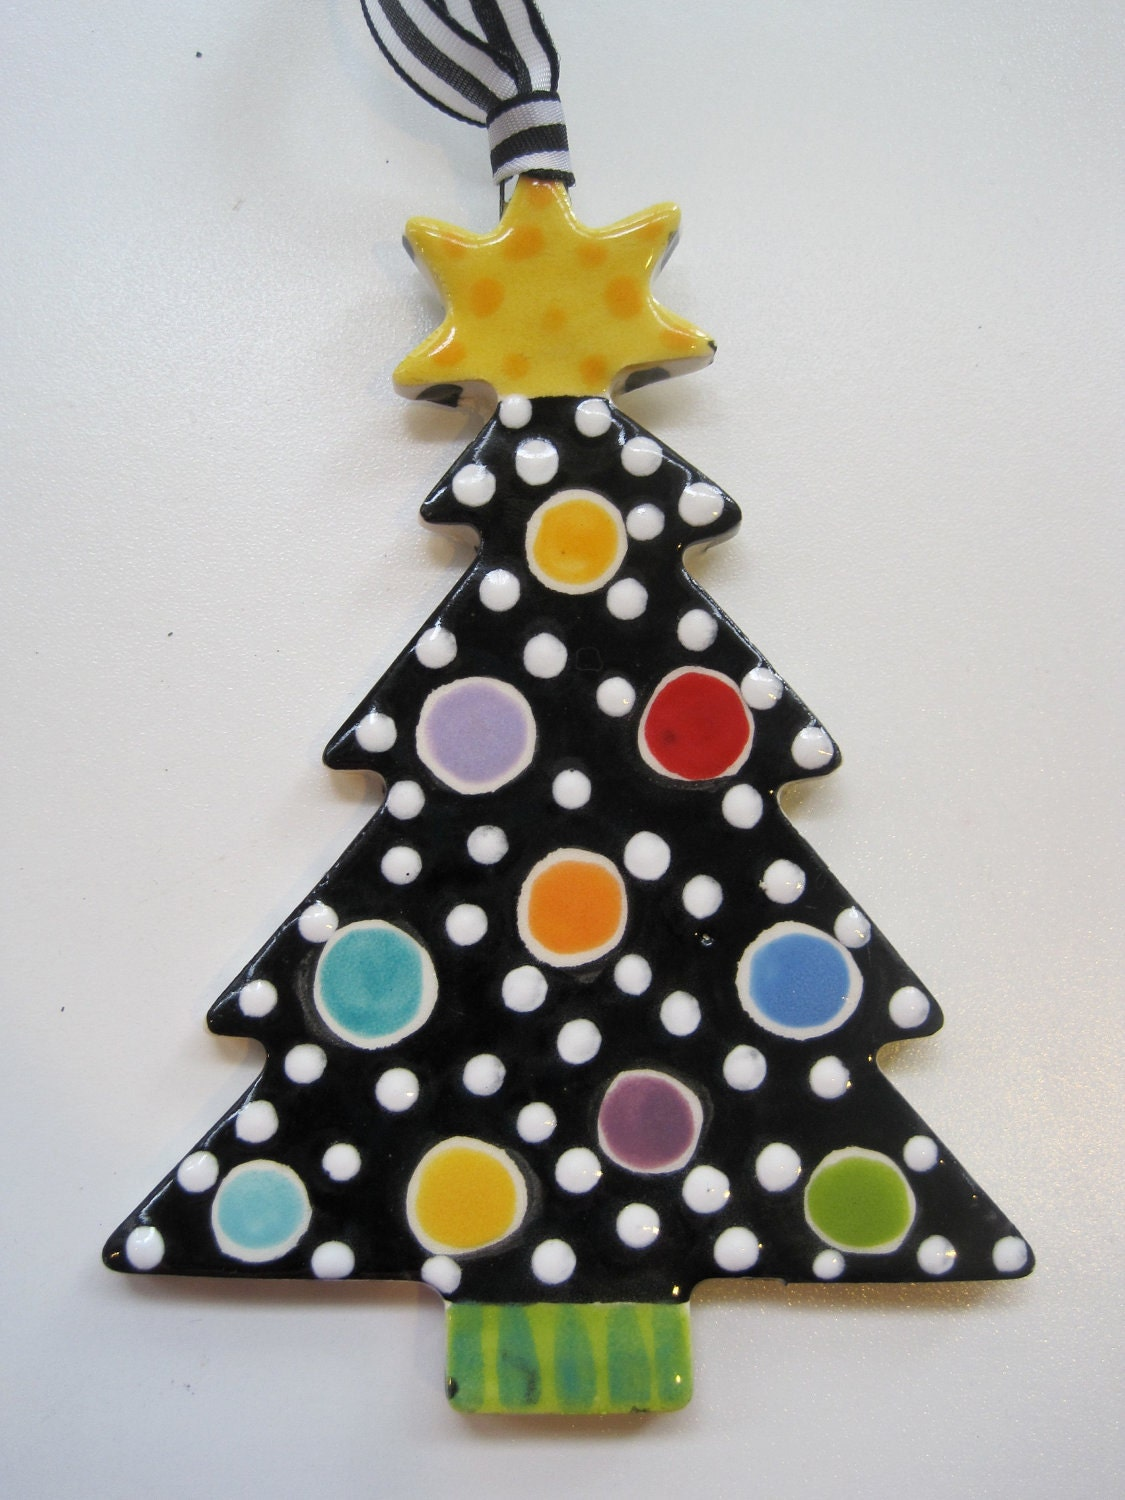 Christmas Pottery Barn Knock Offs And Others Too: Whimsical Christmas Tree Ceramic Ornament